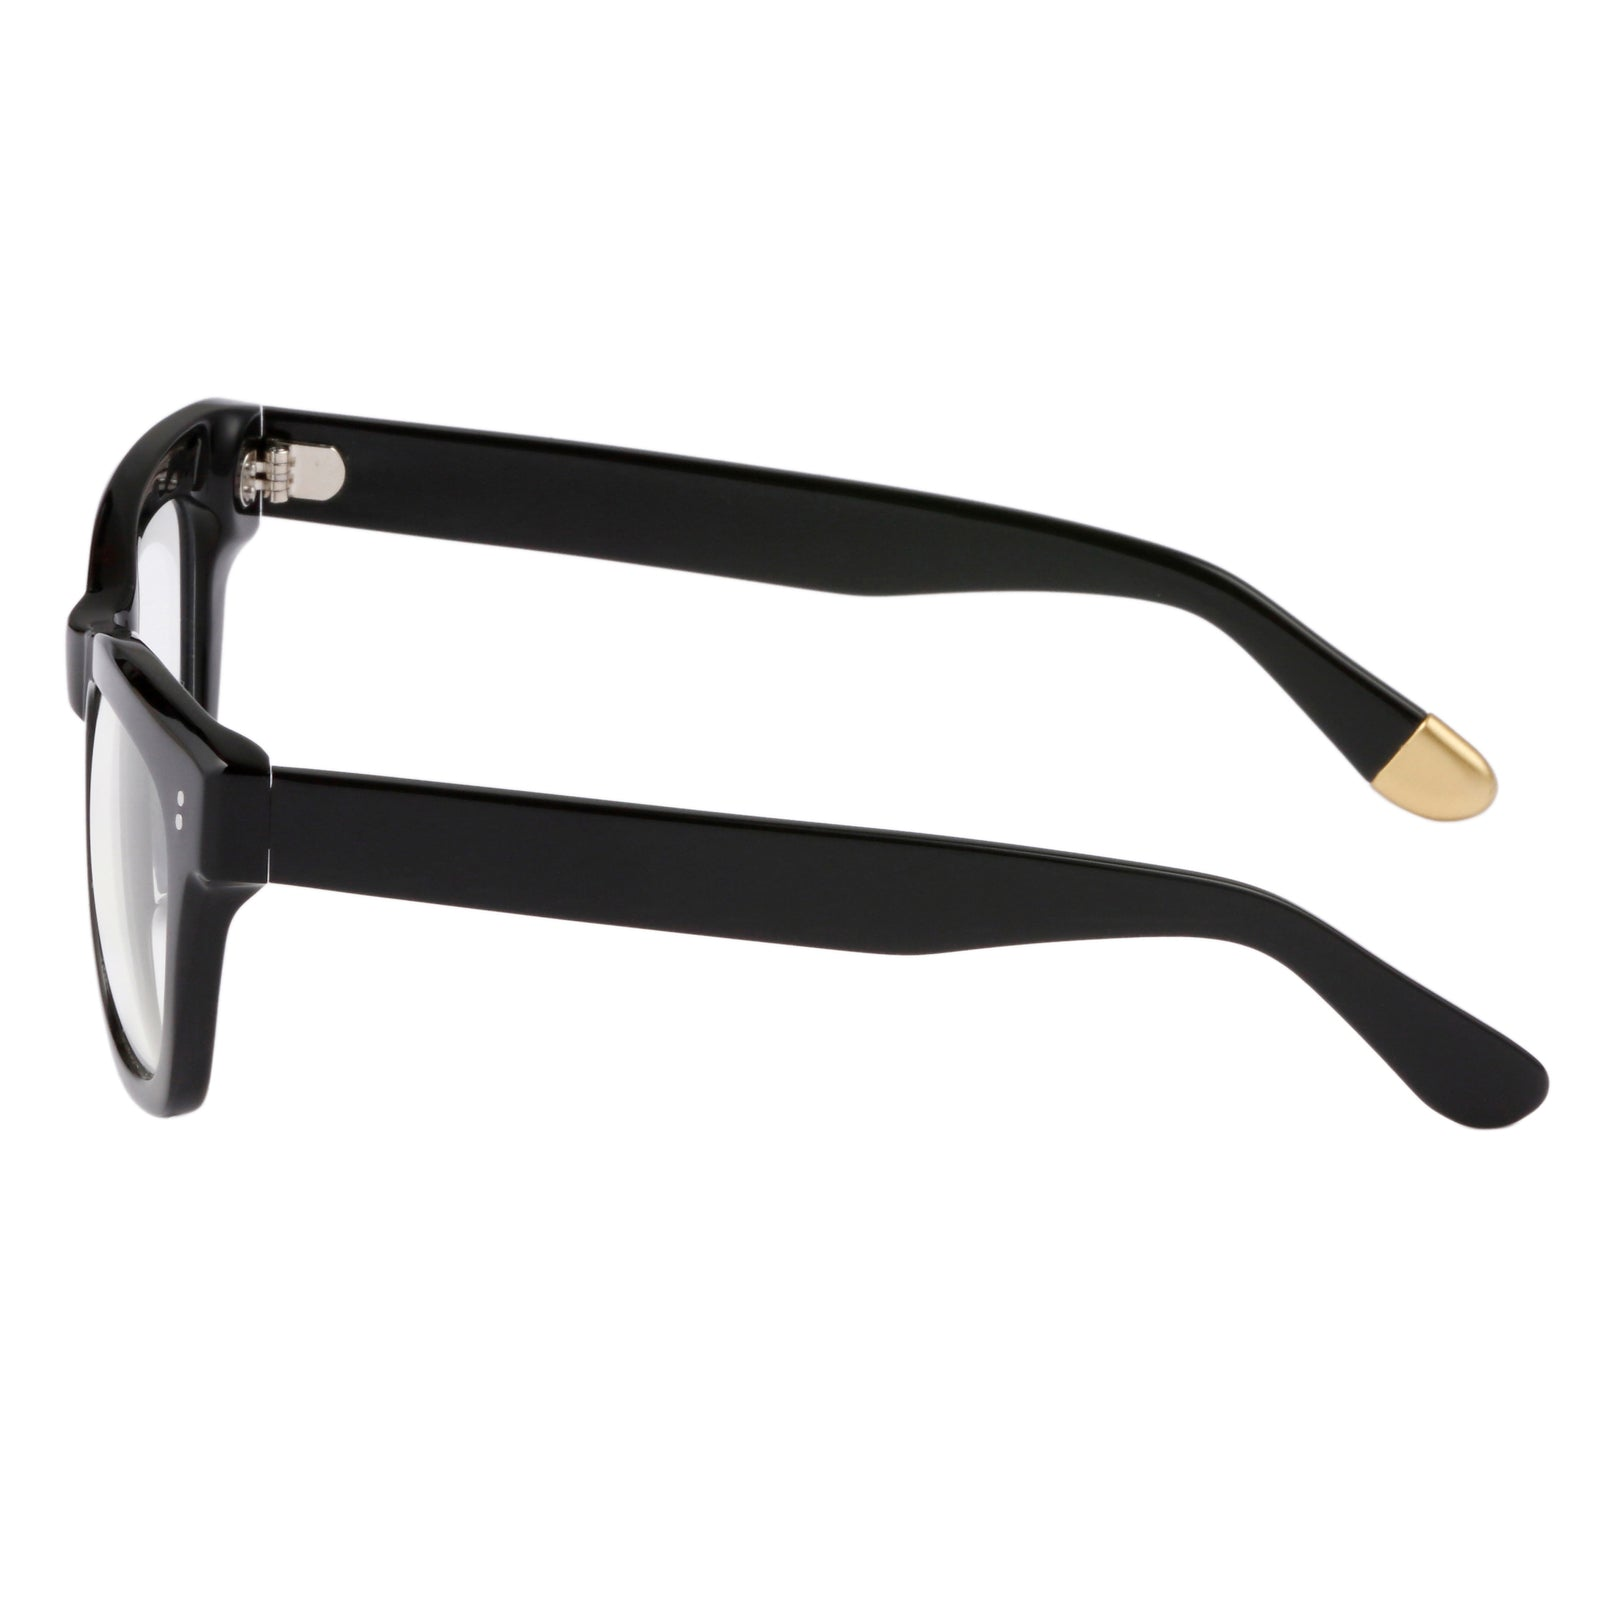 RAMBLER PHOTOCHROMIC LENS